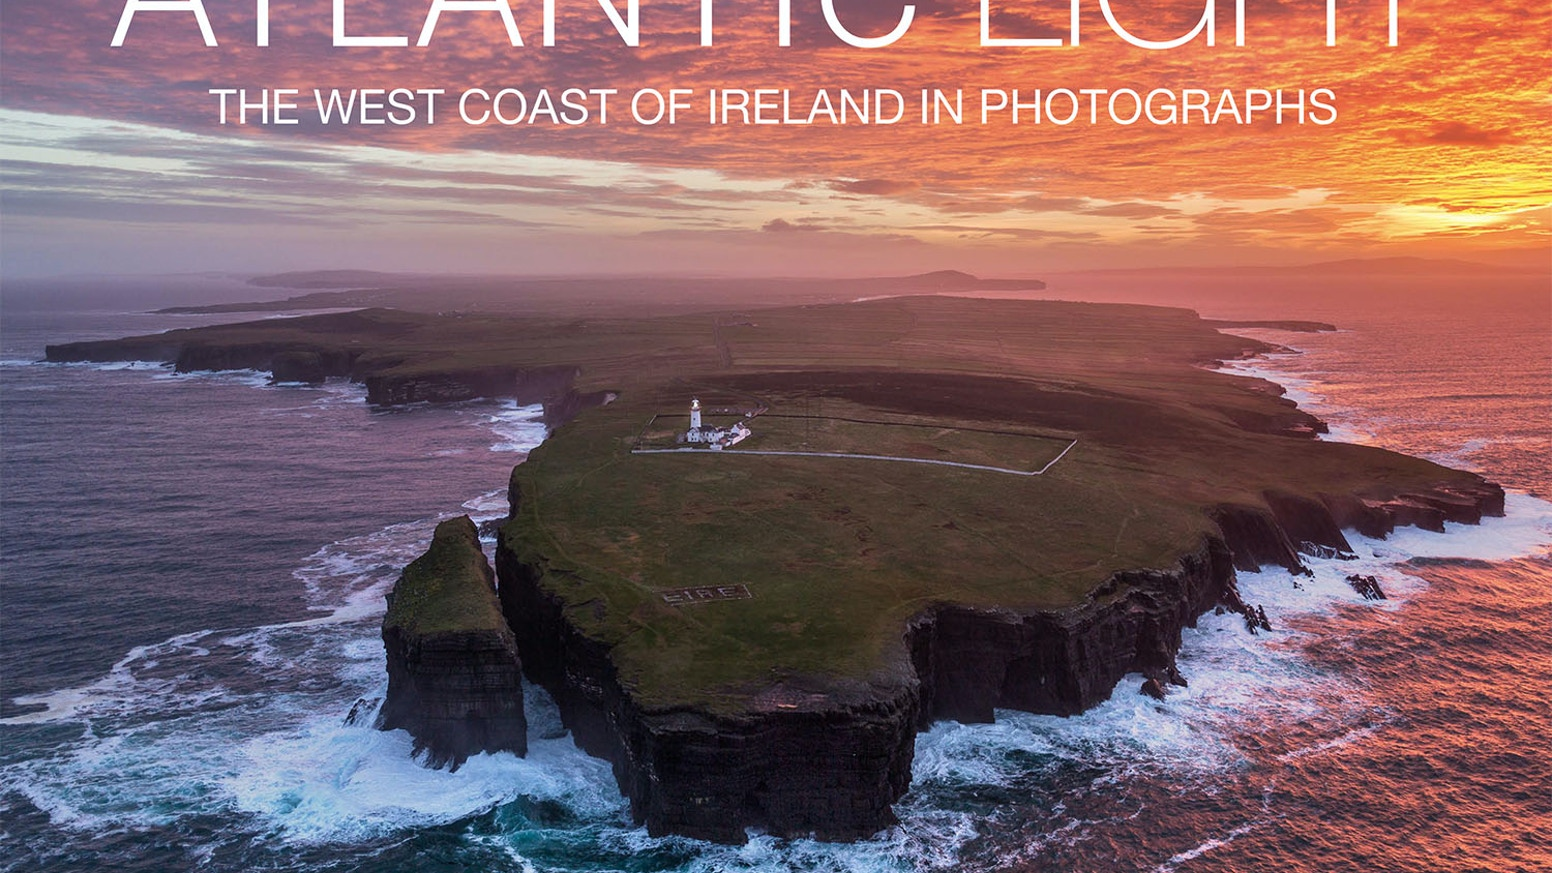 A beautifully presented hardcover book of aerial photographs that show the west coast of Ireland as it's never been seen before.